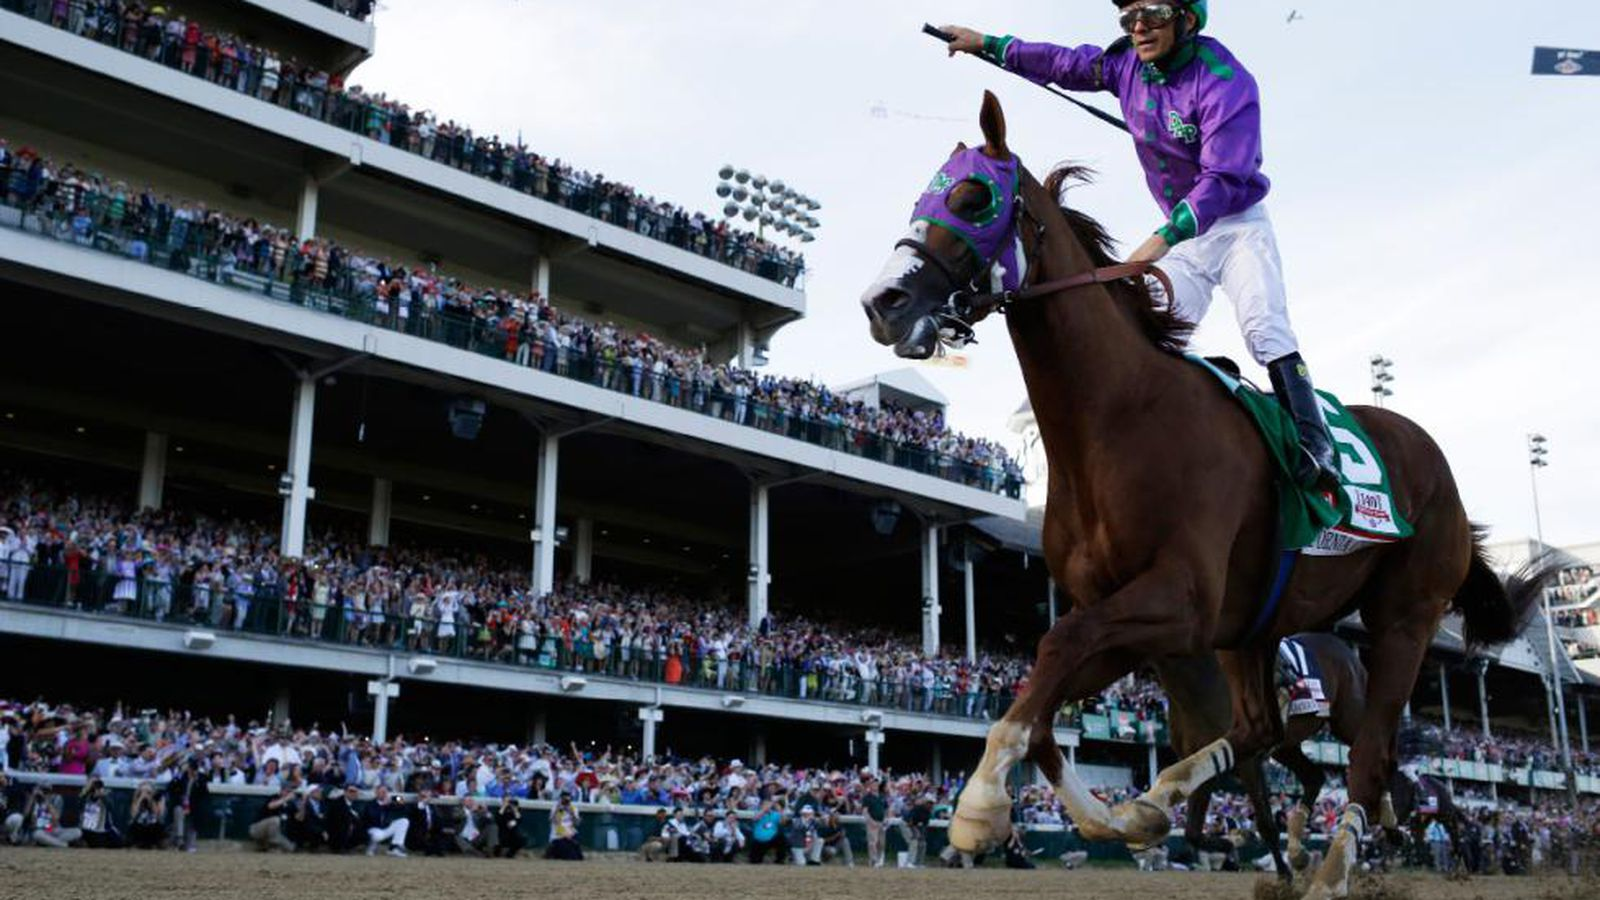 Kentucky Derby 141 Preview And Down The Stretch They Come